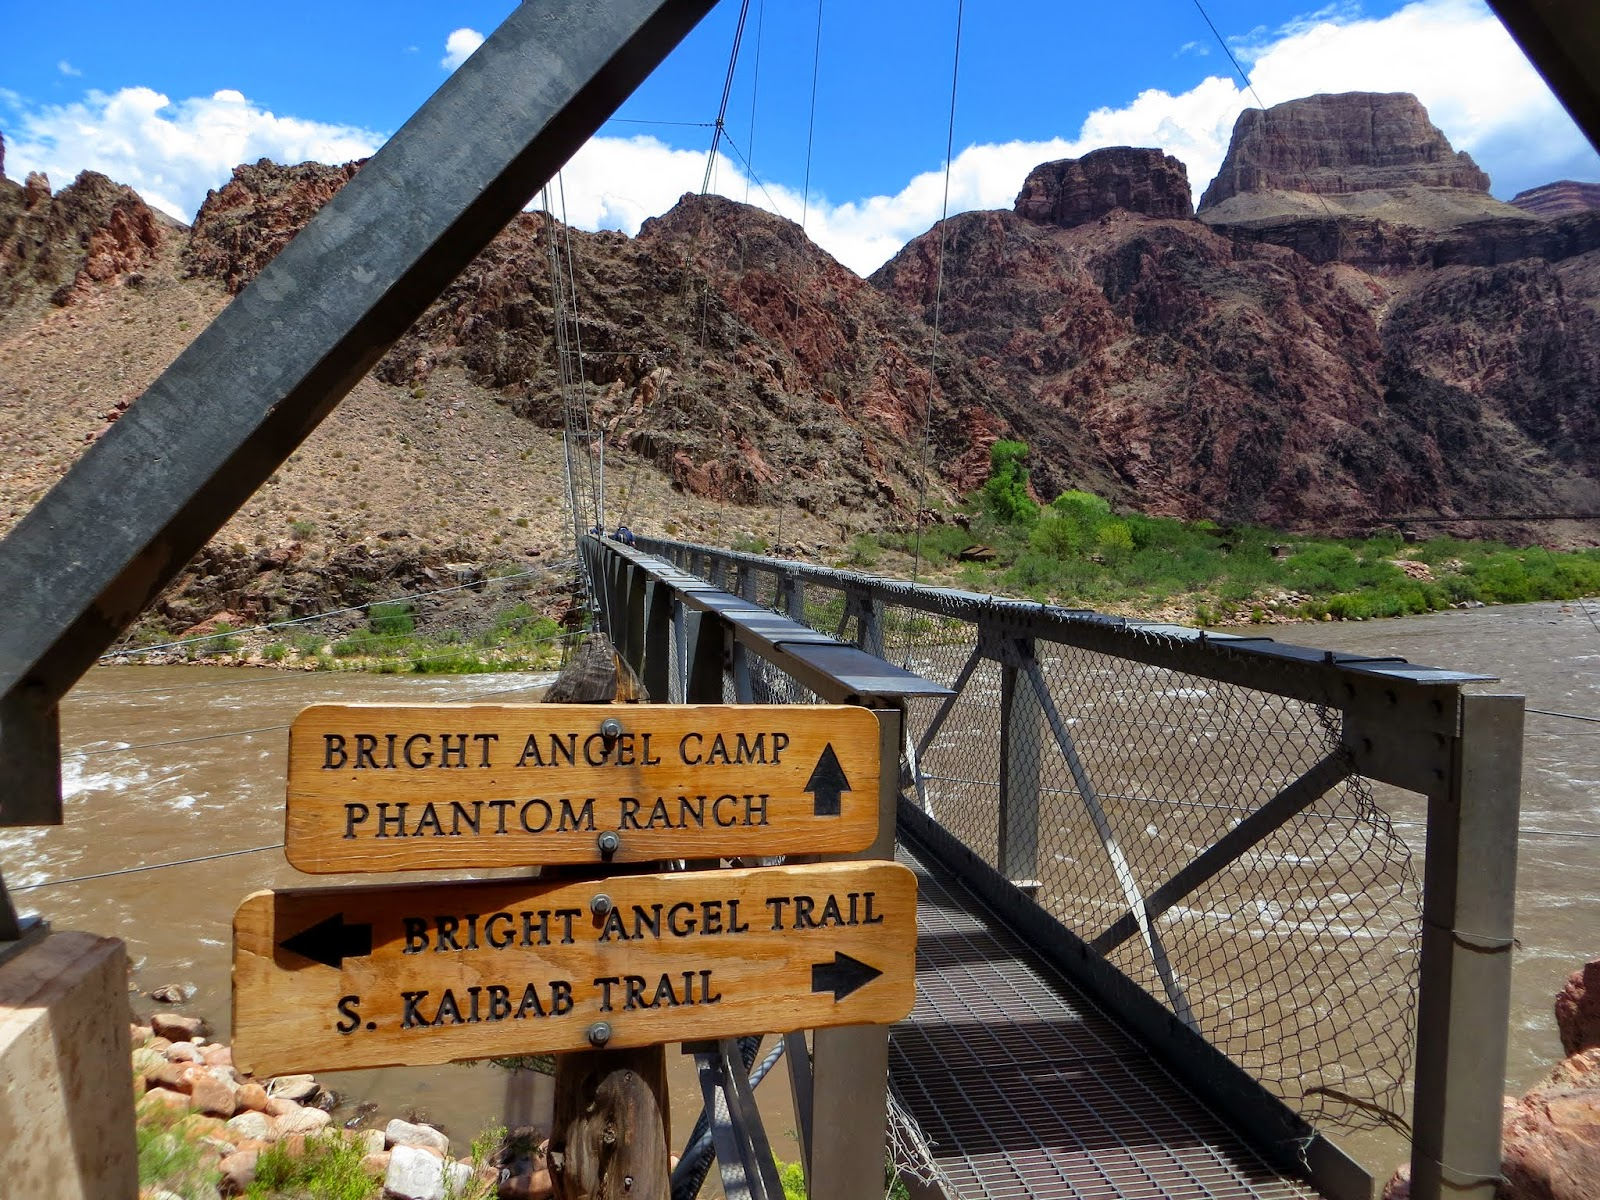 The Road Goes Ever On Grand Canyon The Bright Angel Trail